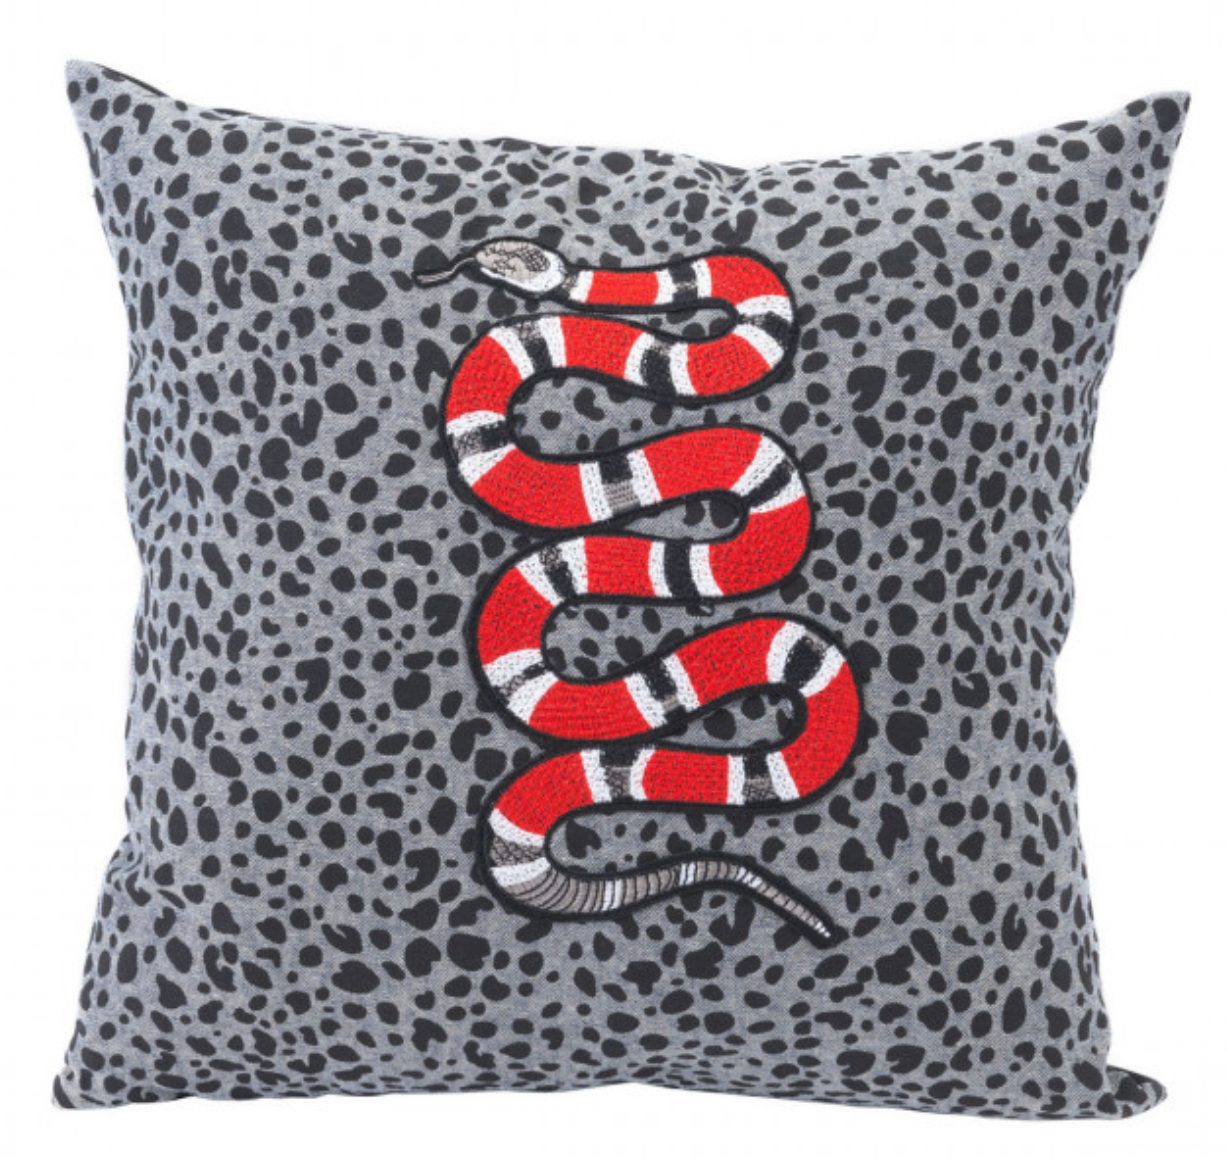 A Snaking Throw Pillow